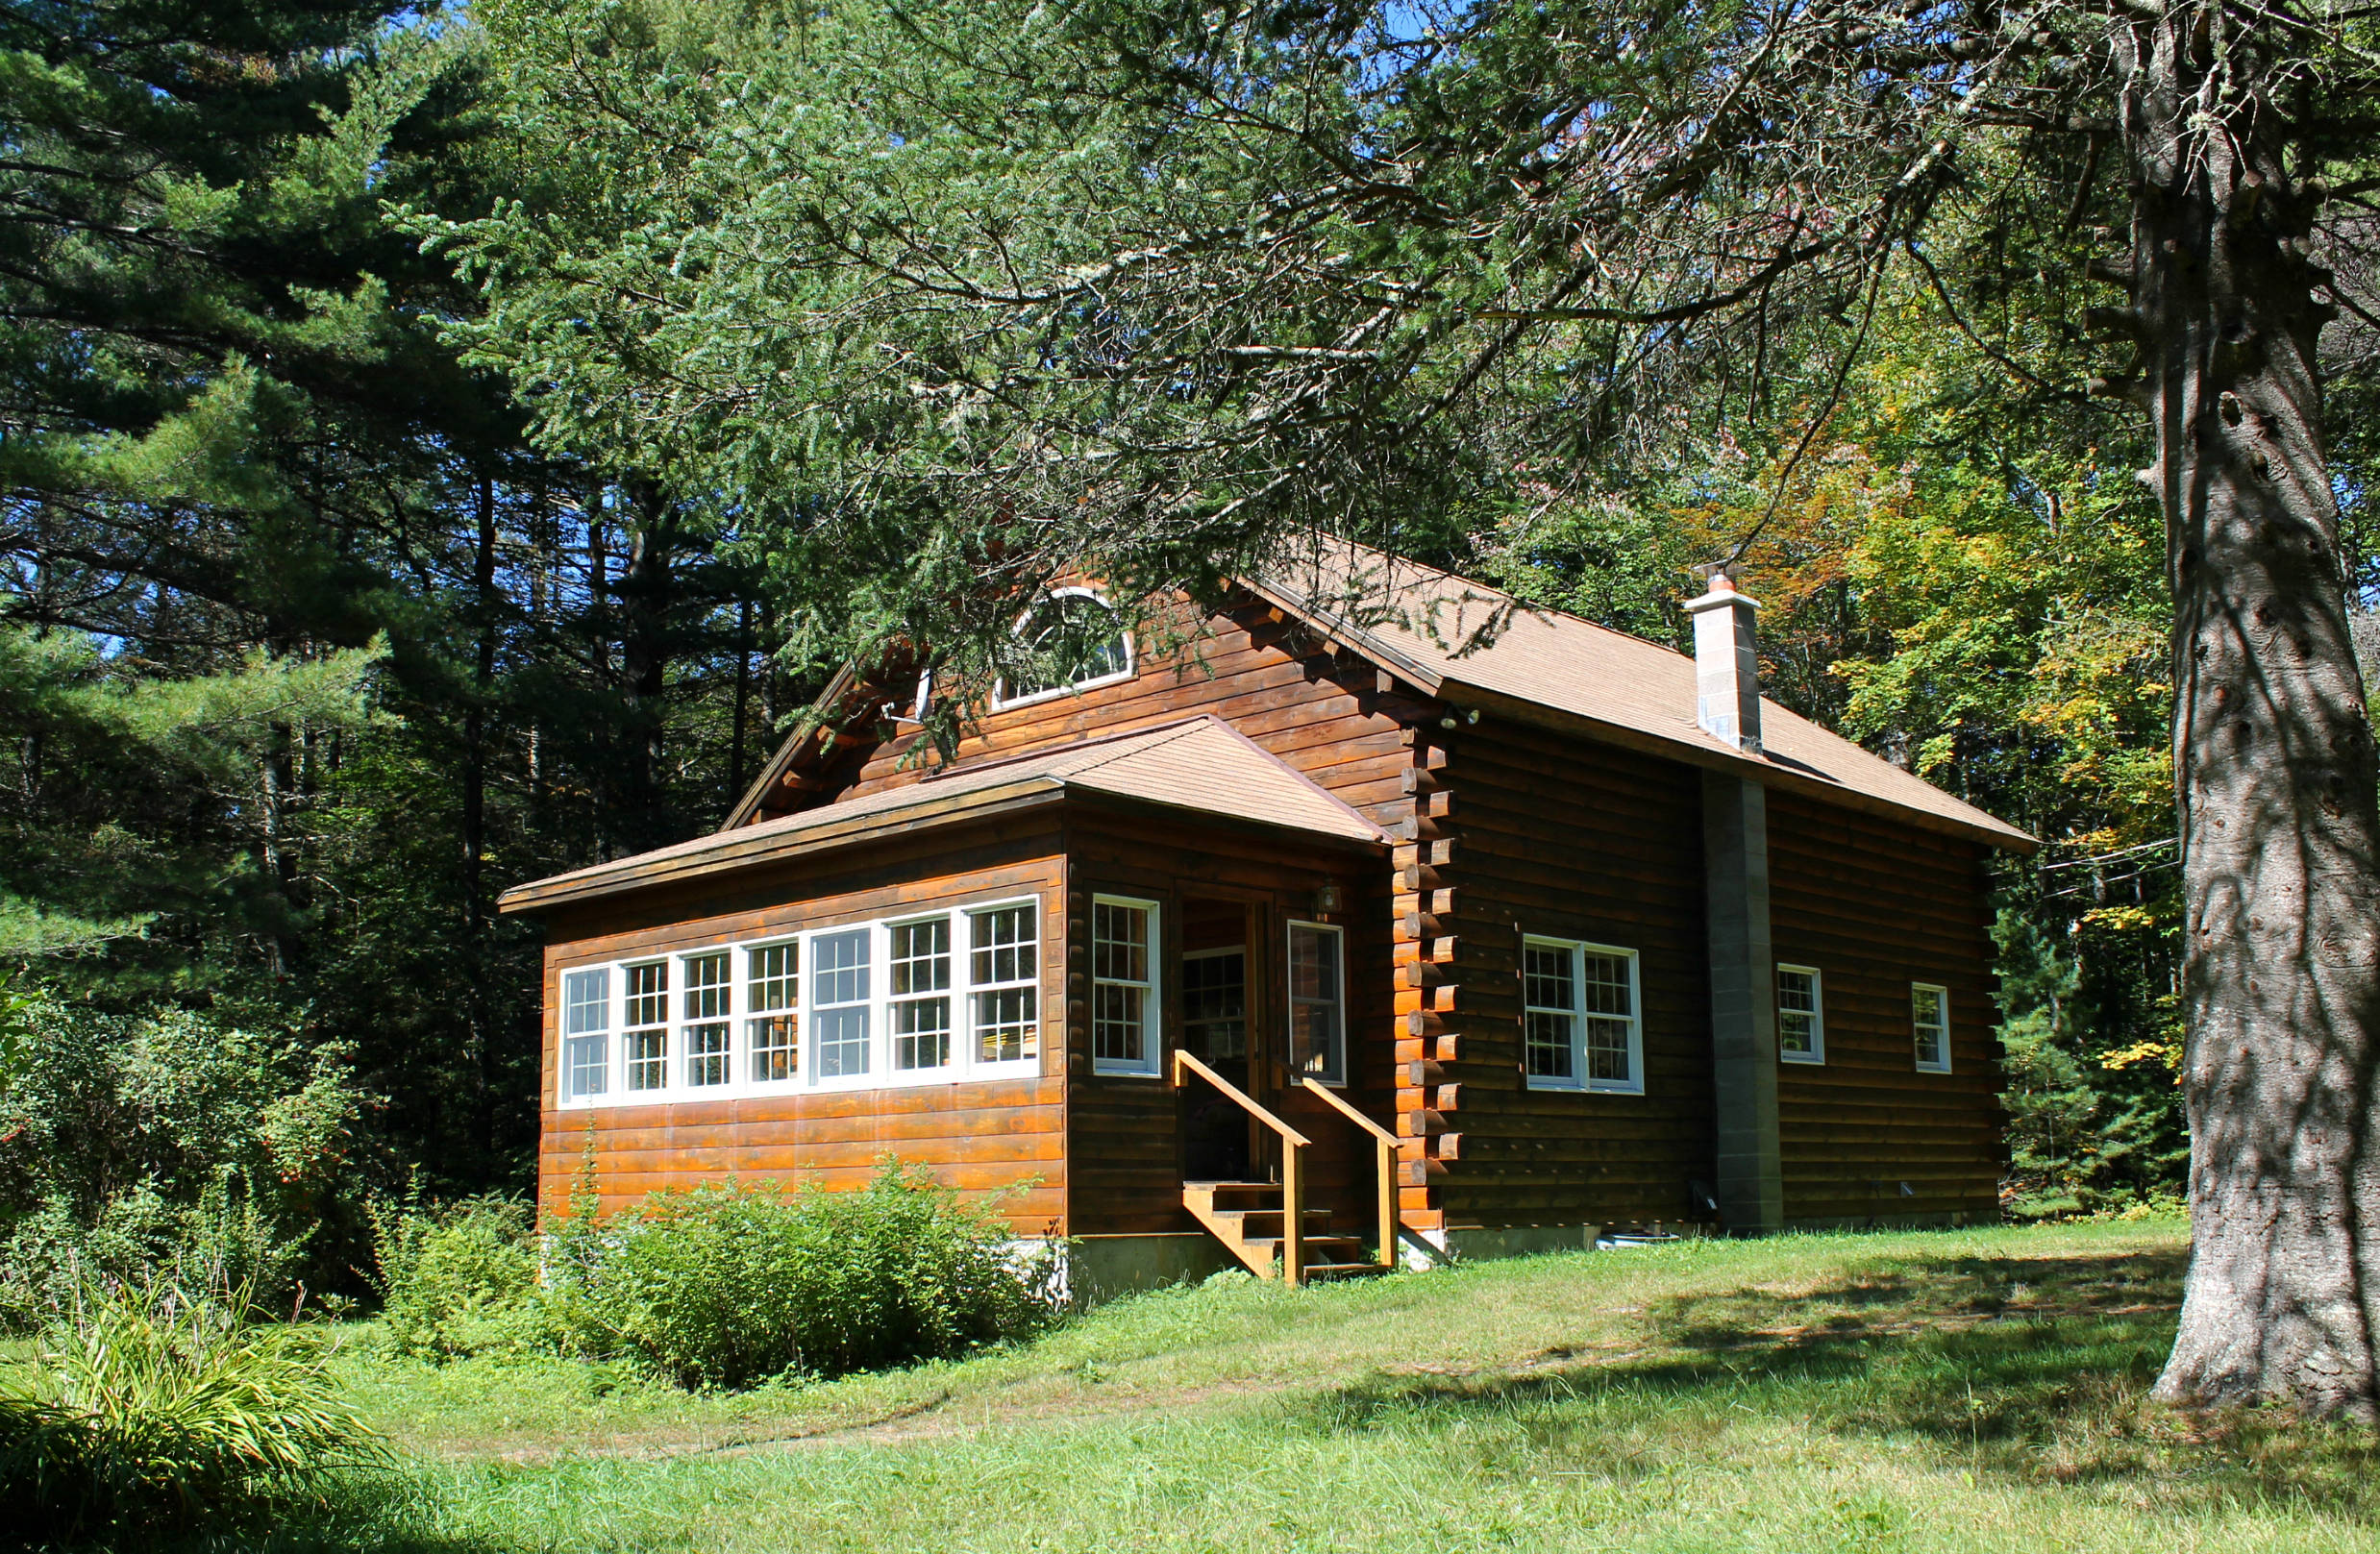 New Hampshire Log Homes Rustic Or Refined You Choose